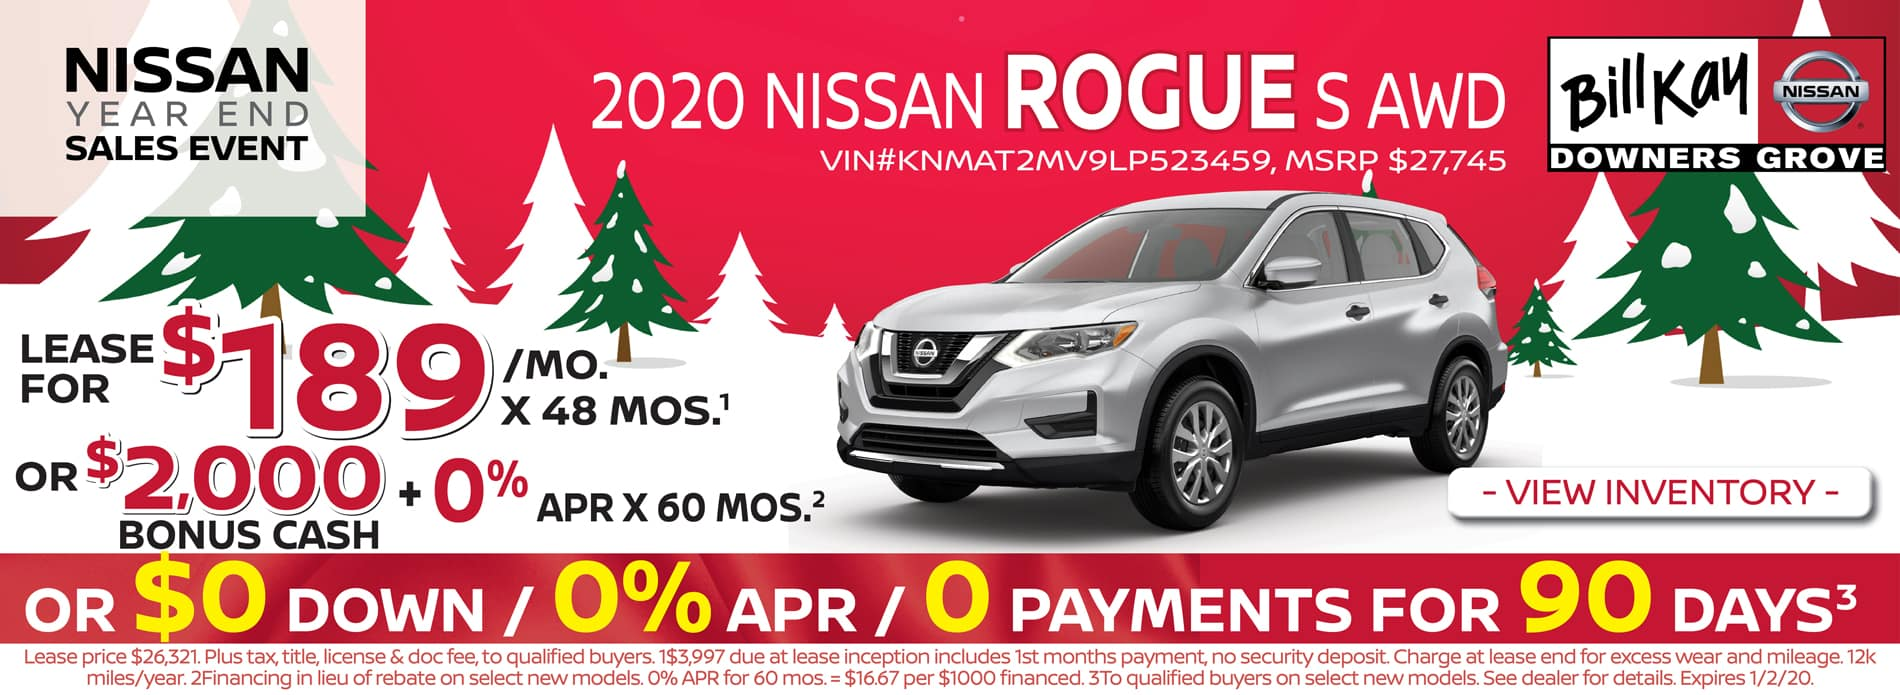 Lease a 2020 Nissan Rogue S for $189/mo for 48 mos.